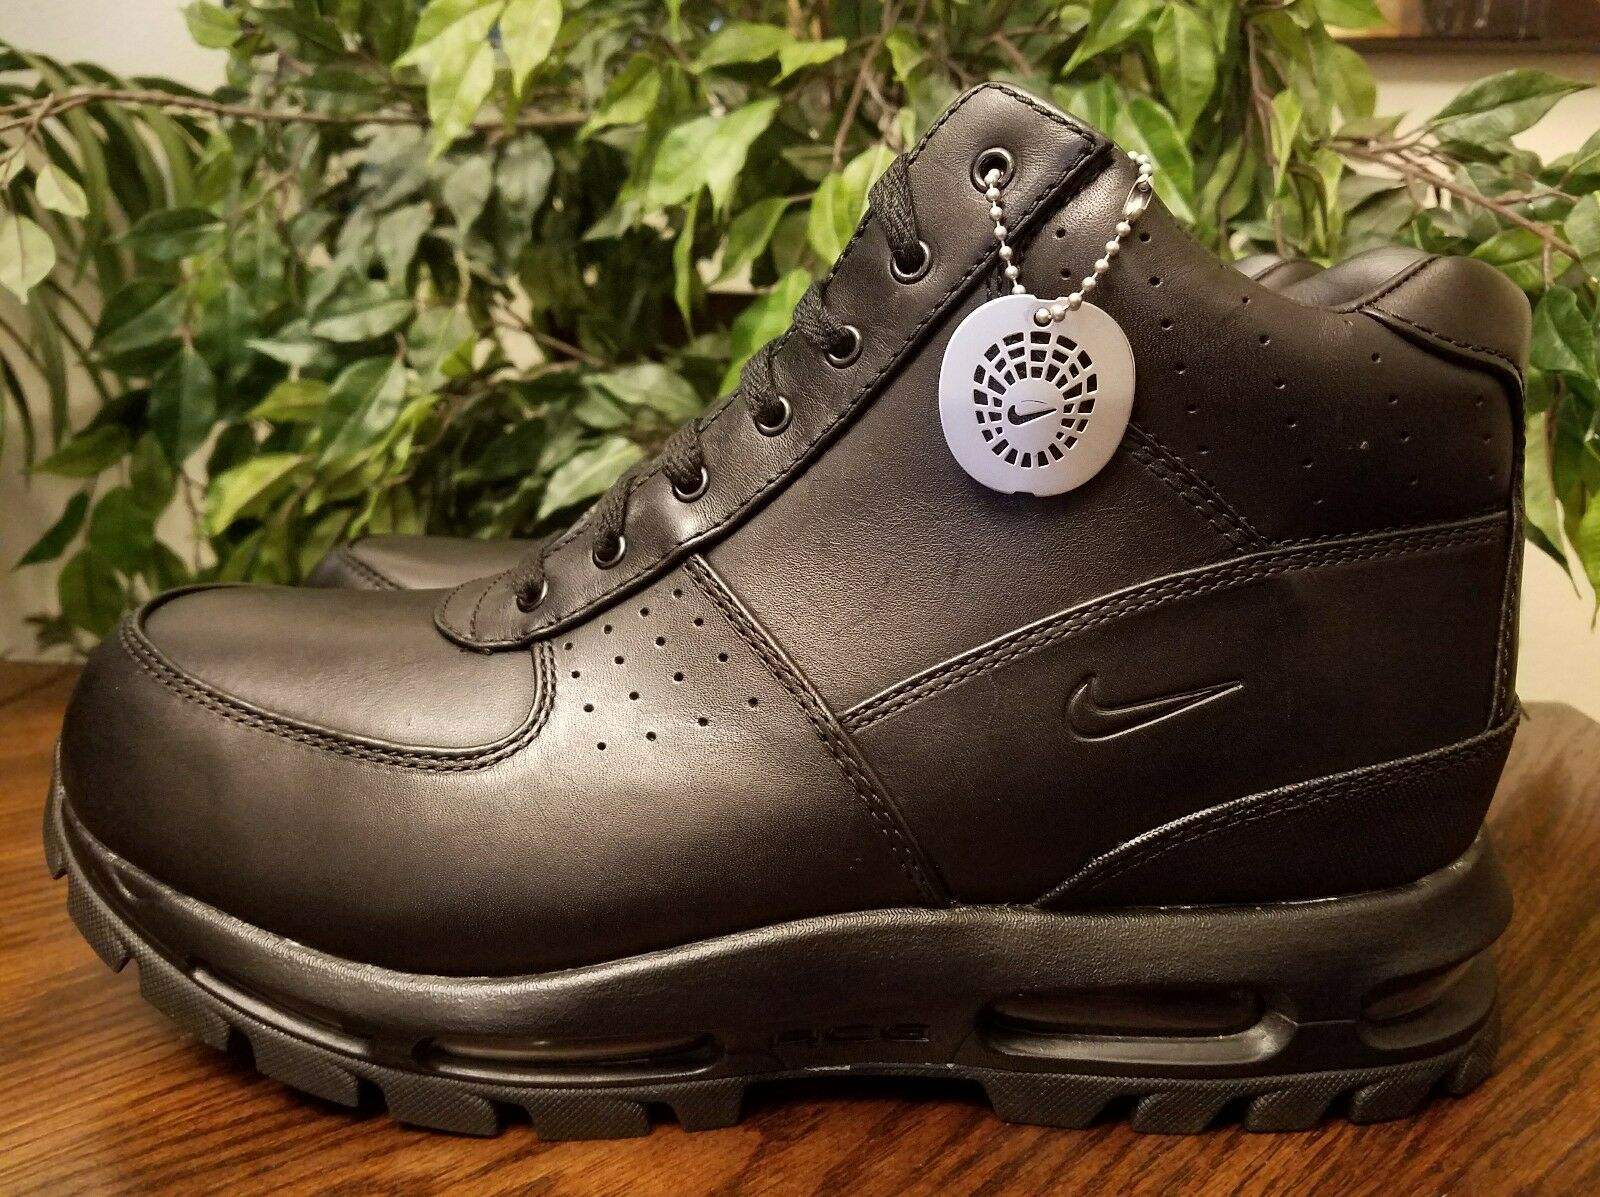 Nike Men Air Max Goadome 2013 Leather Boots Sz 9.5 Black 599474-050 THESPOT917 Comfortable and good-looking